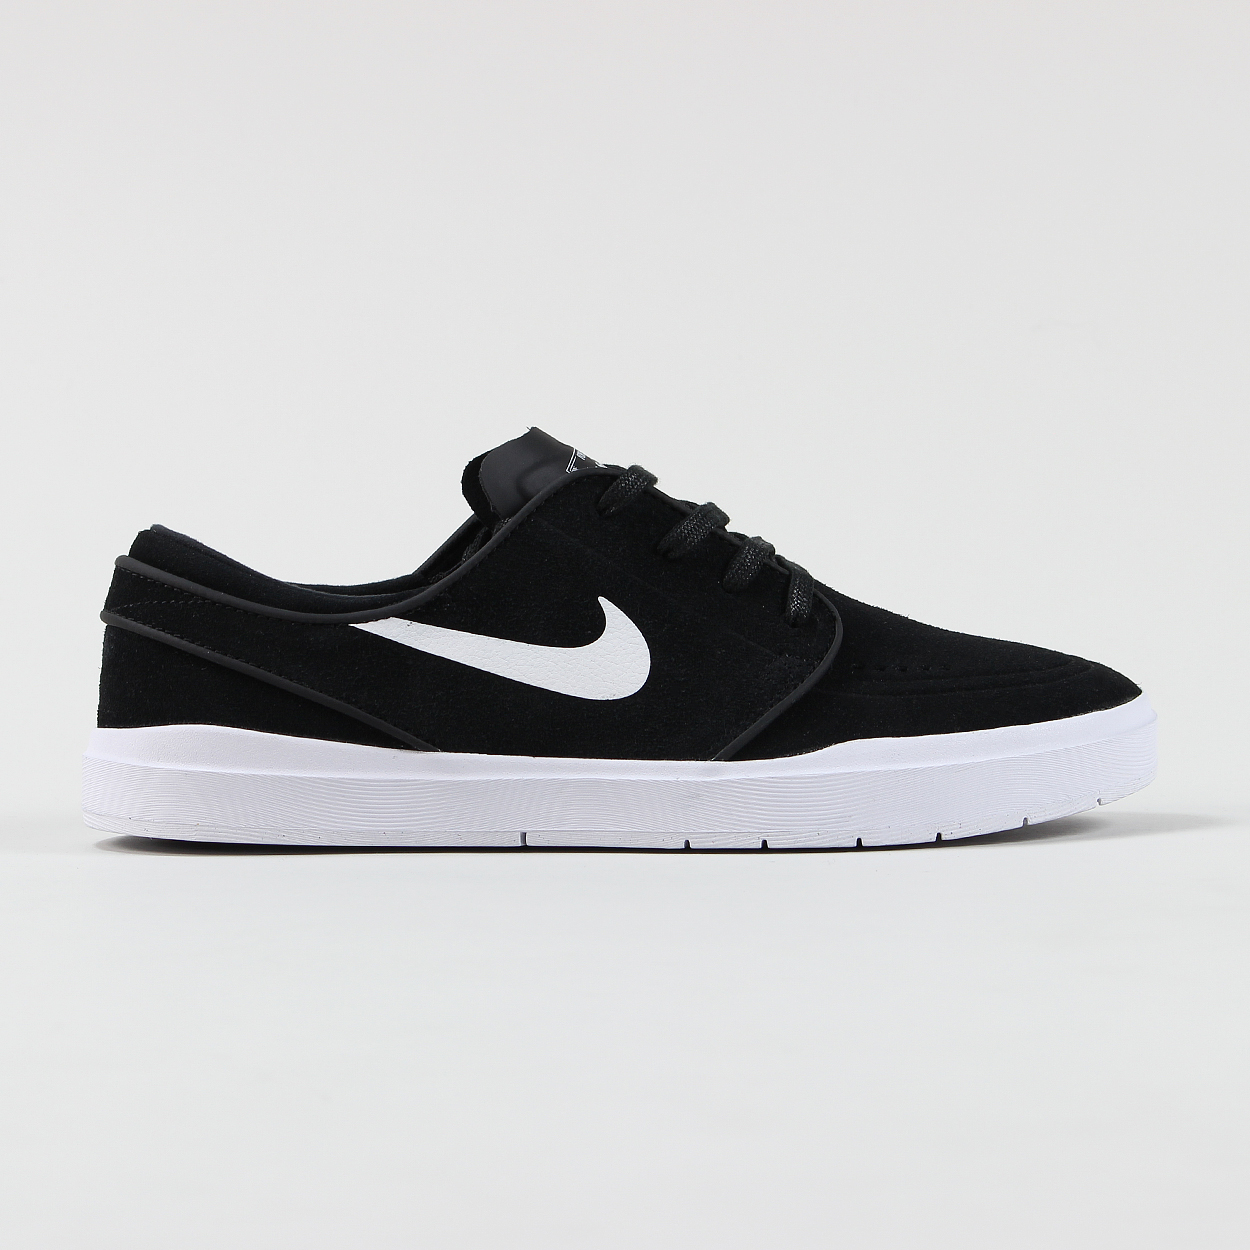 low cost 114f4 1499c Nike SB Stefan Janoski Hyperfeel Mens Shoes Trainers Black White £56.25